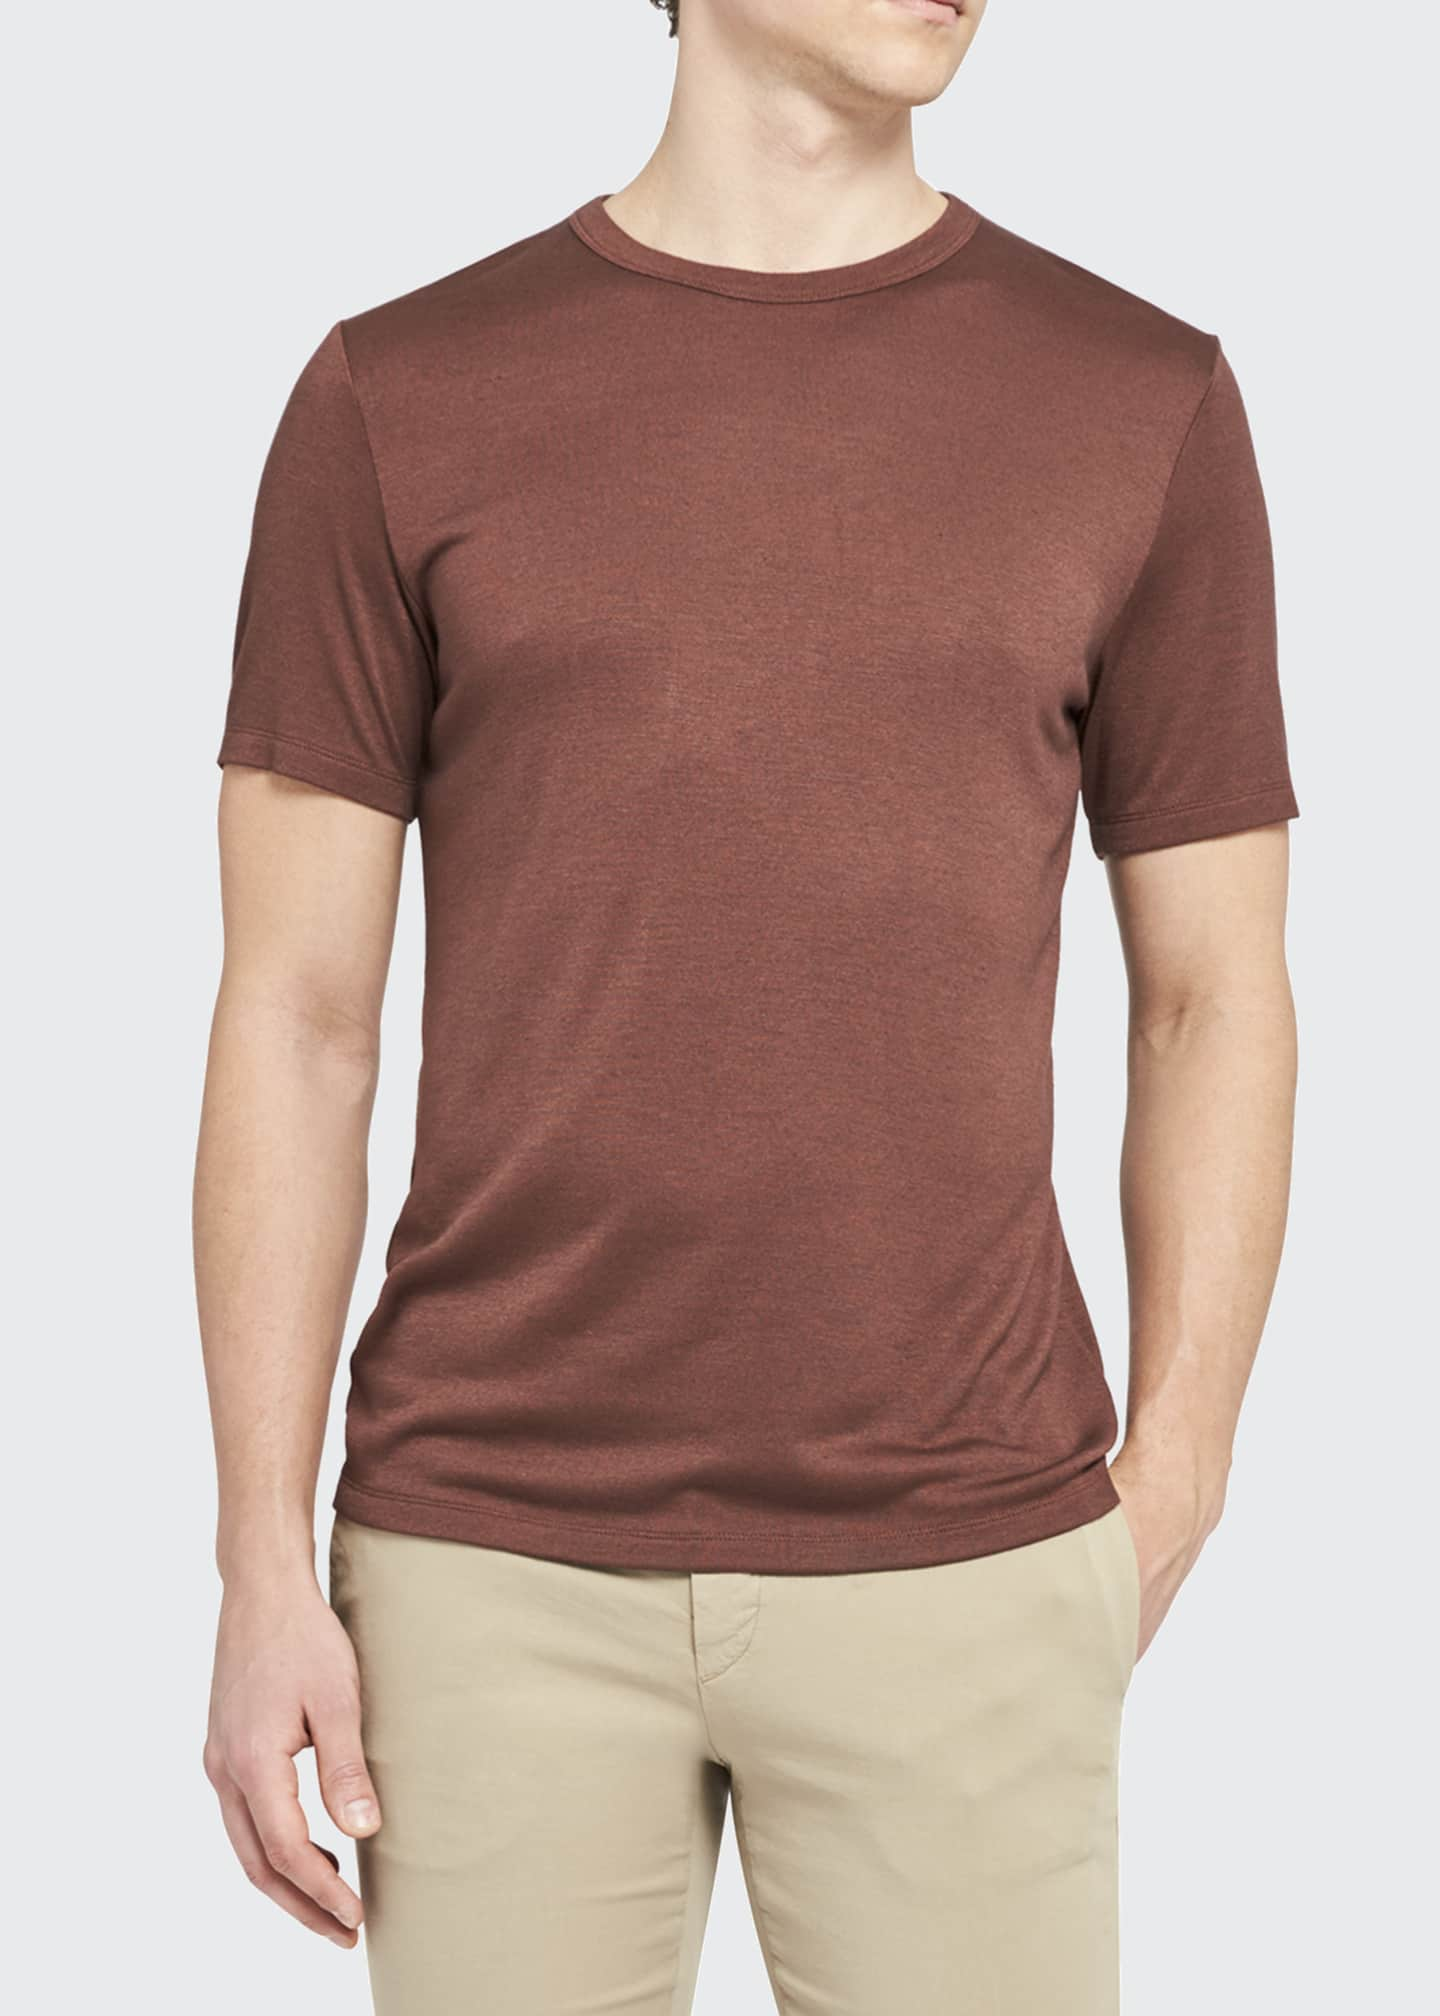 Image 3 of 3: Men's Anemone Essential T-Shirt